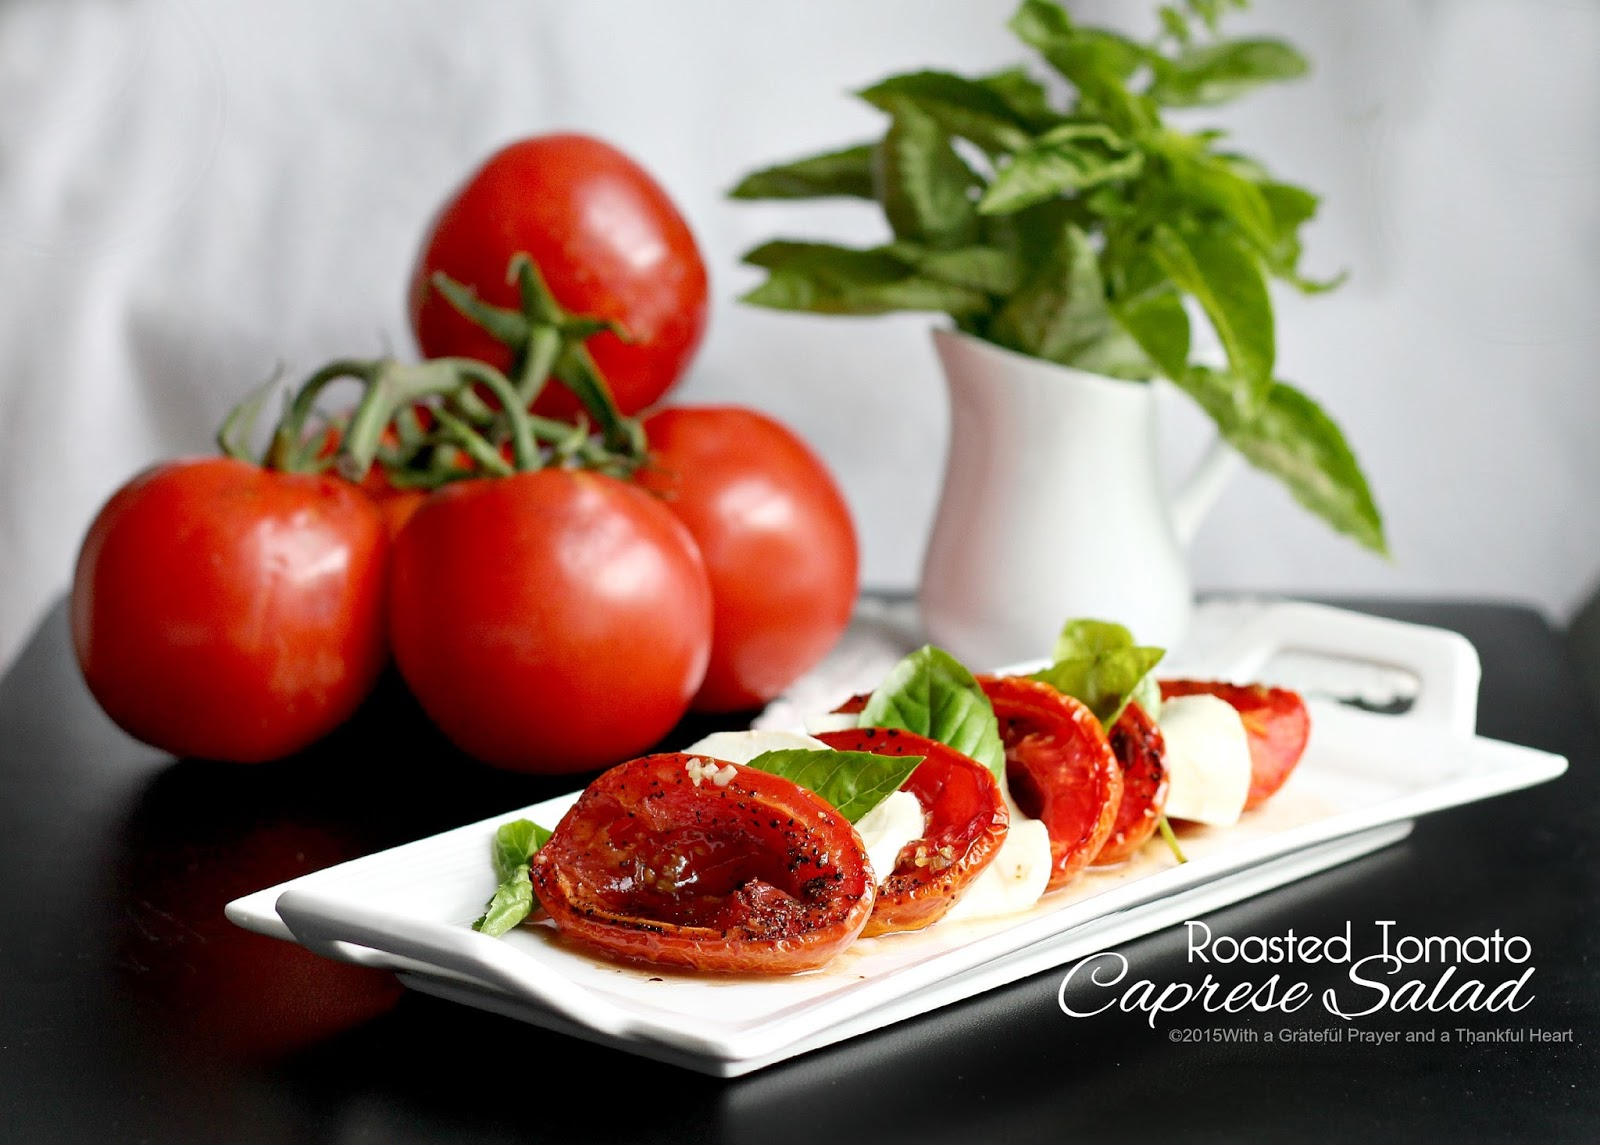 ... Grateful Prayer and a Thankful Heart: Roasted Tomato Caprese Salad